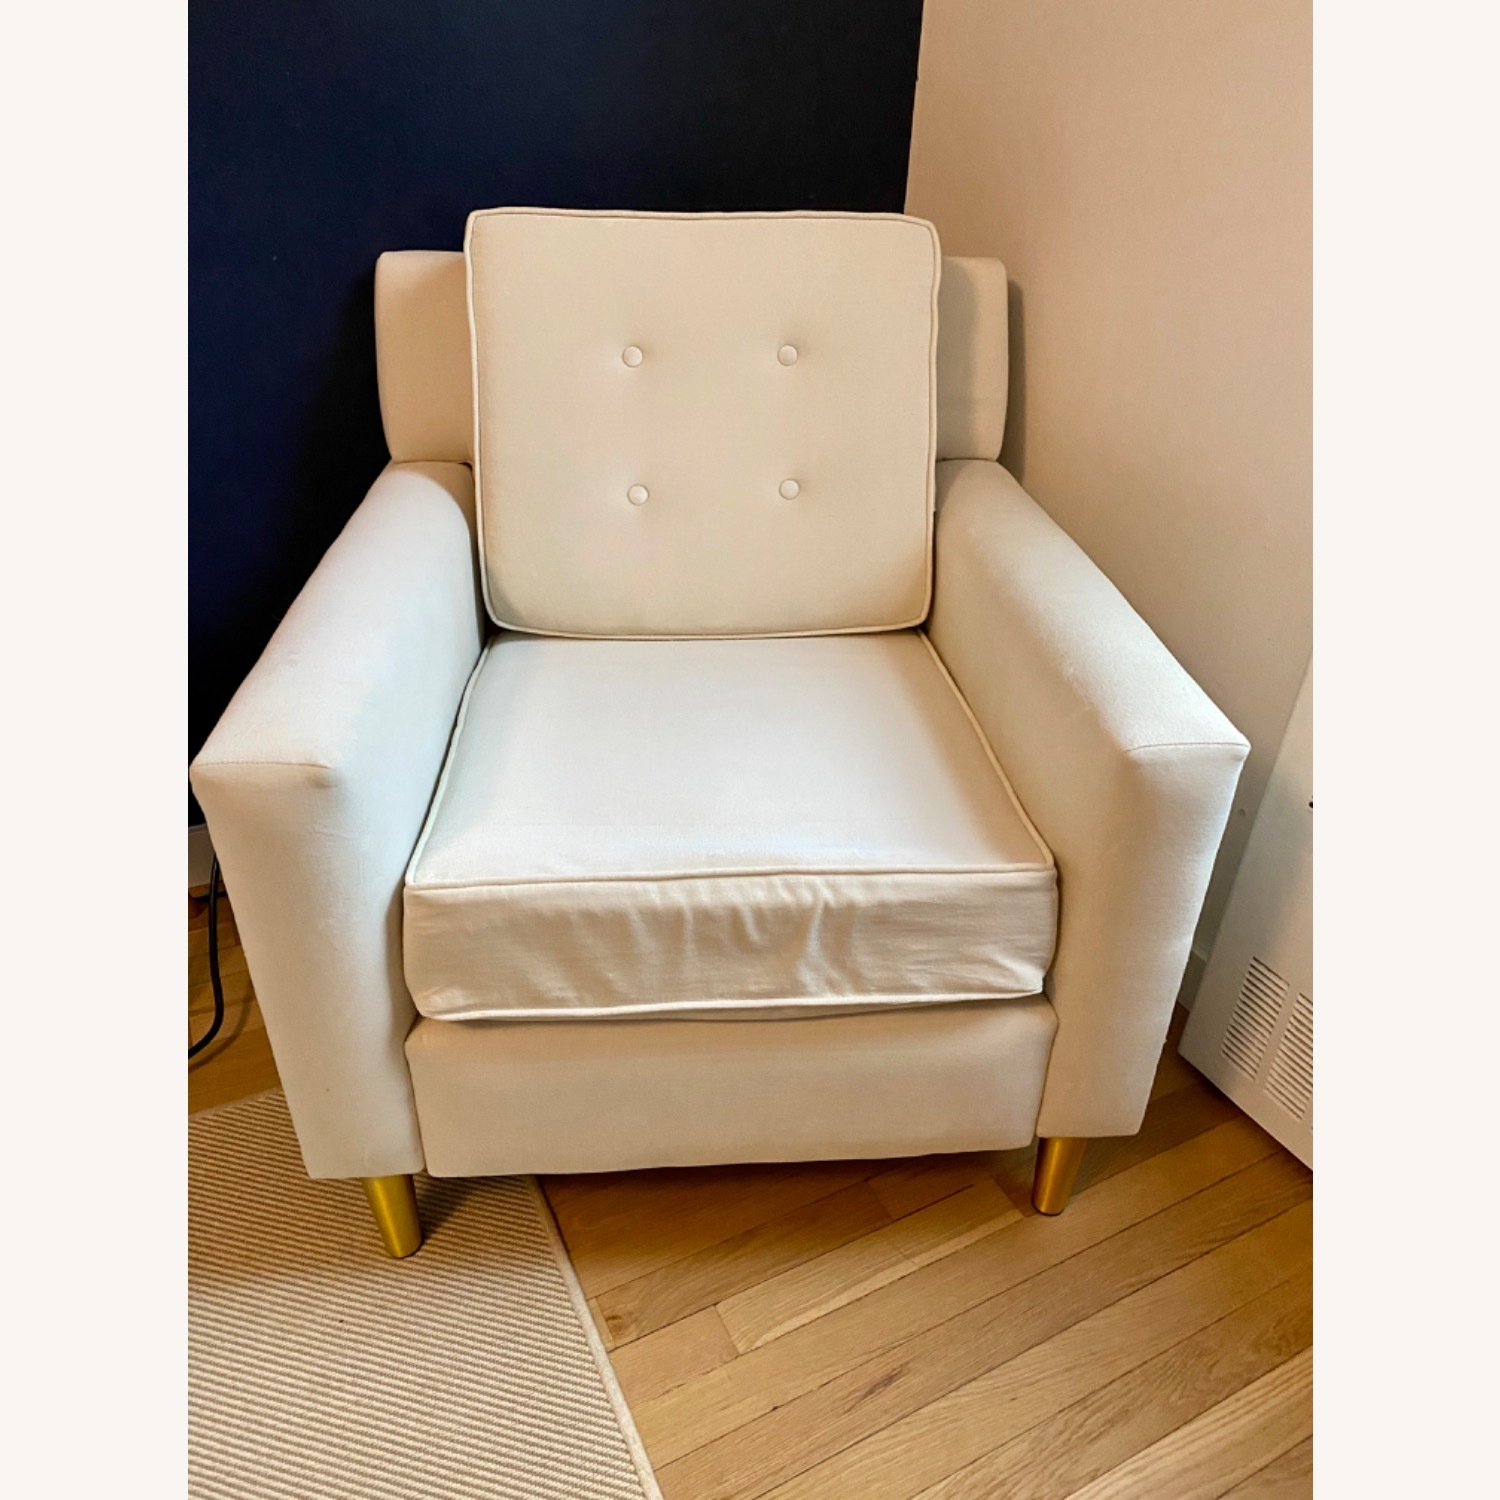 Velvet Chair in Dove with Gold Legs - image-1